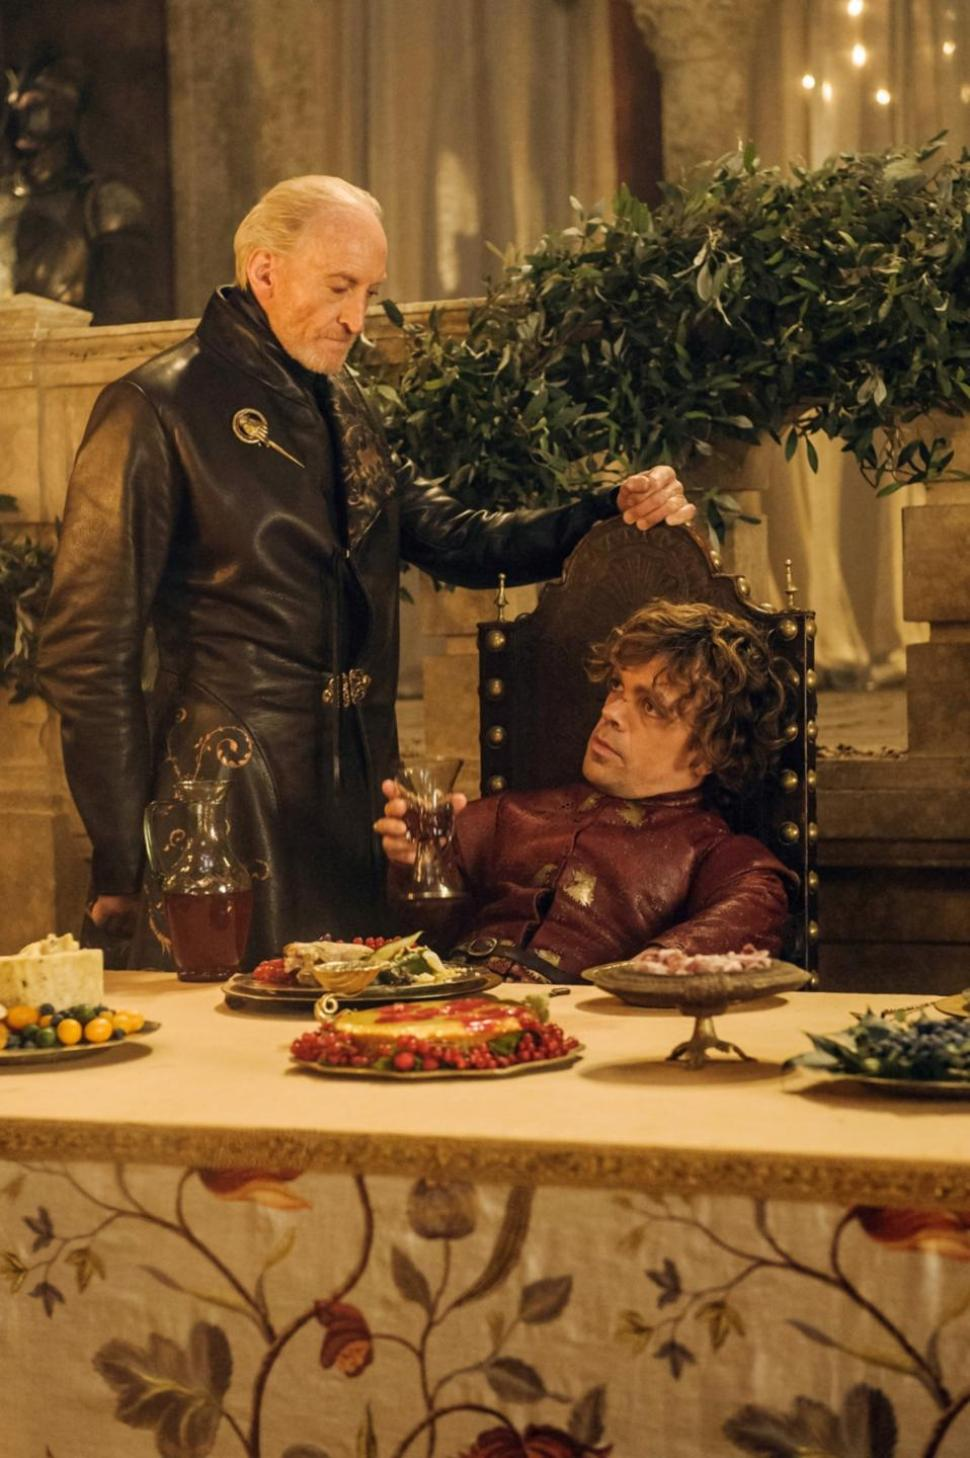 All Men Must Dine - Game of Thrones Pop-up Restaurant